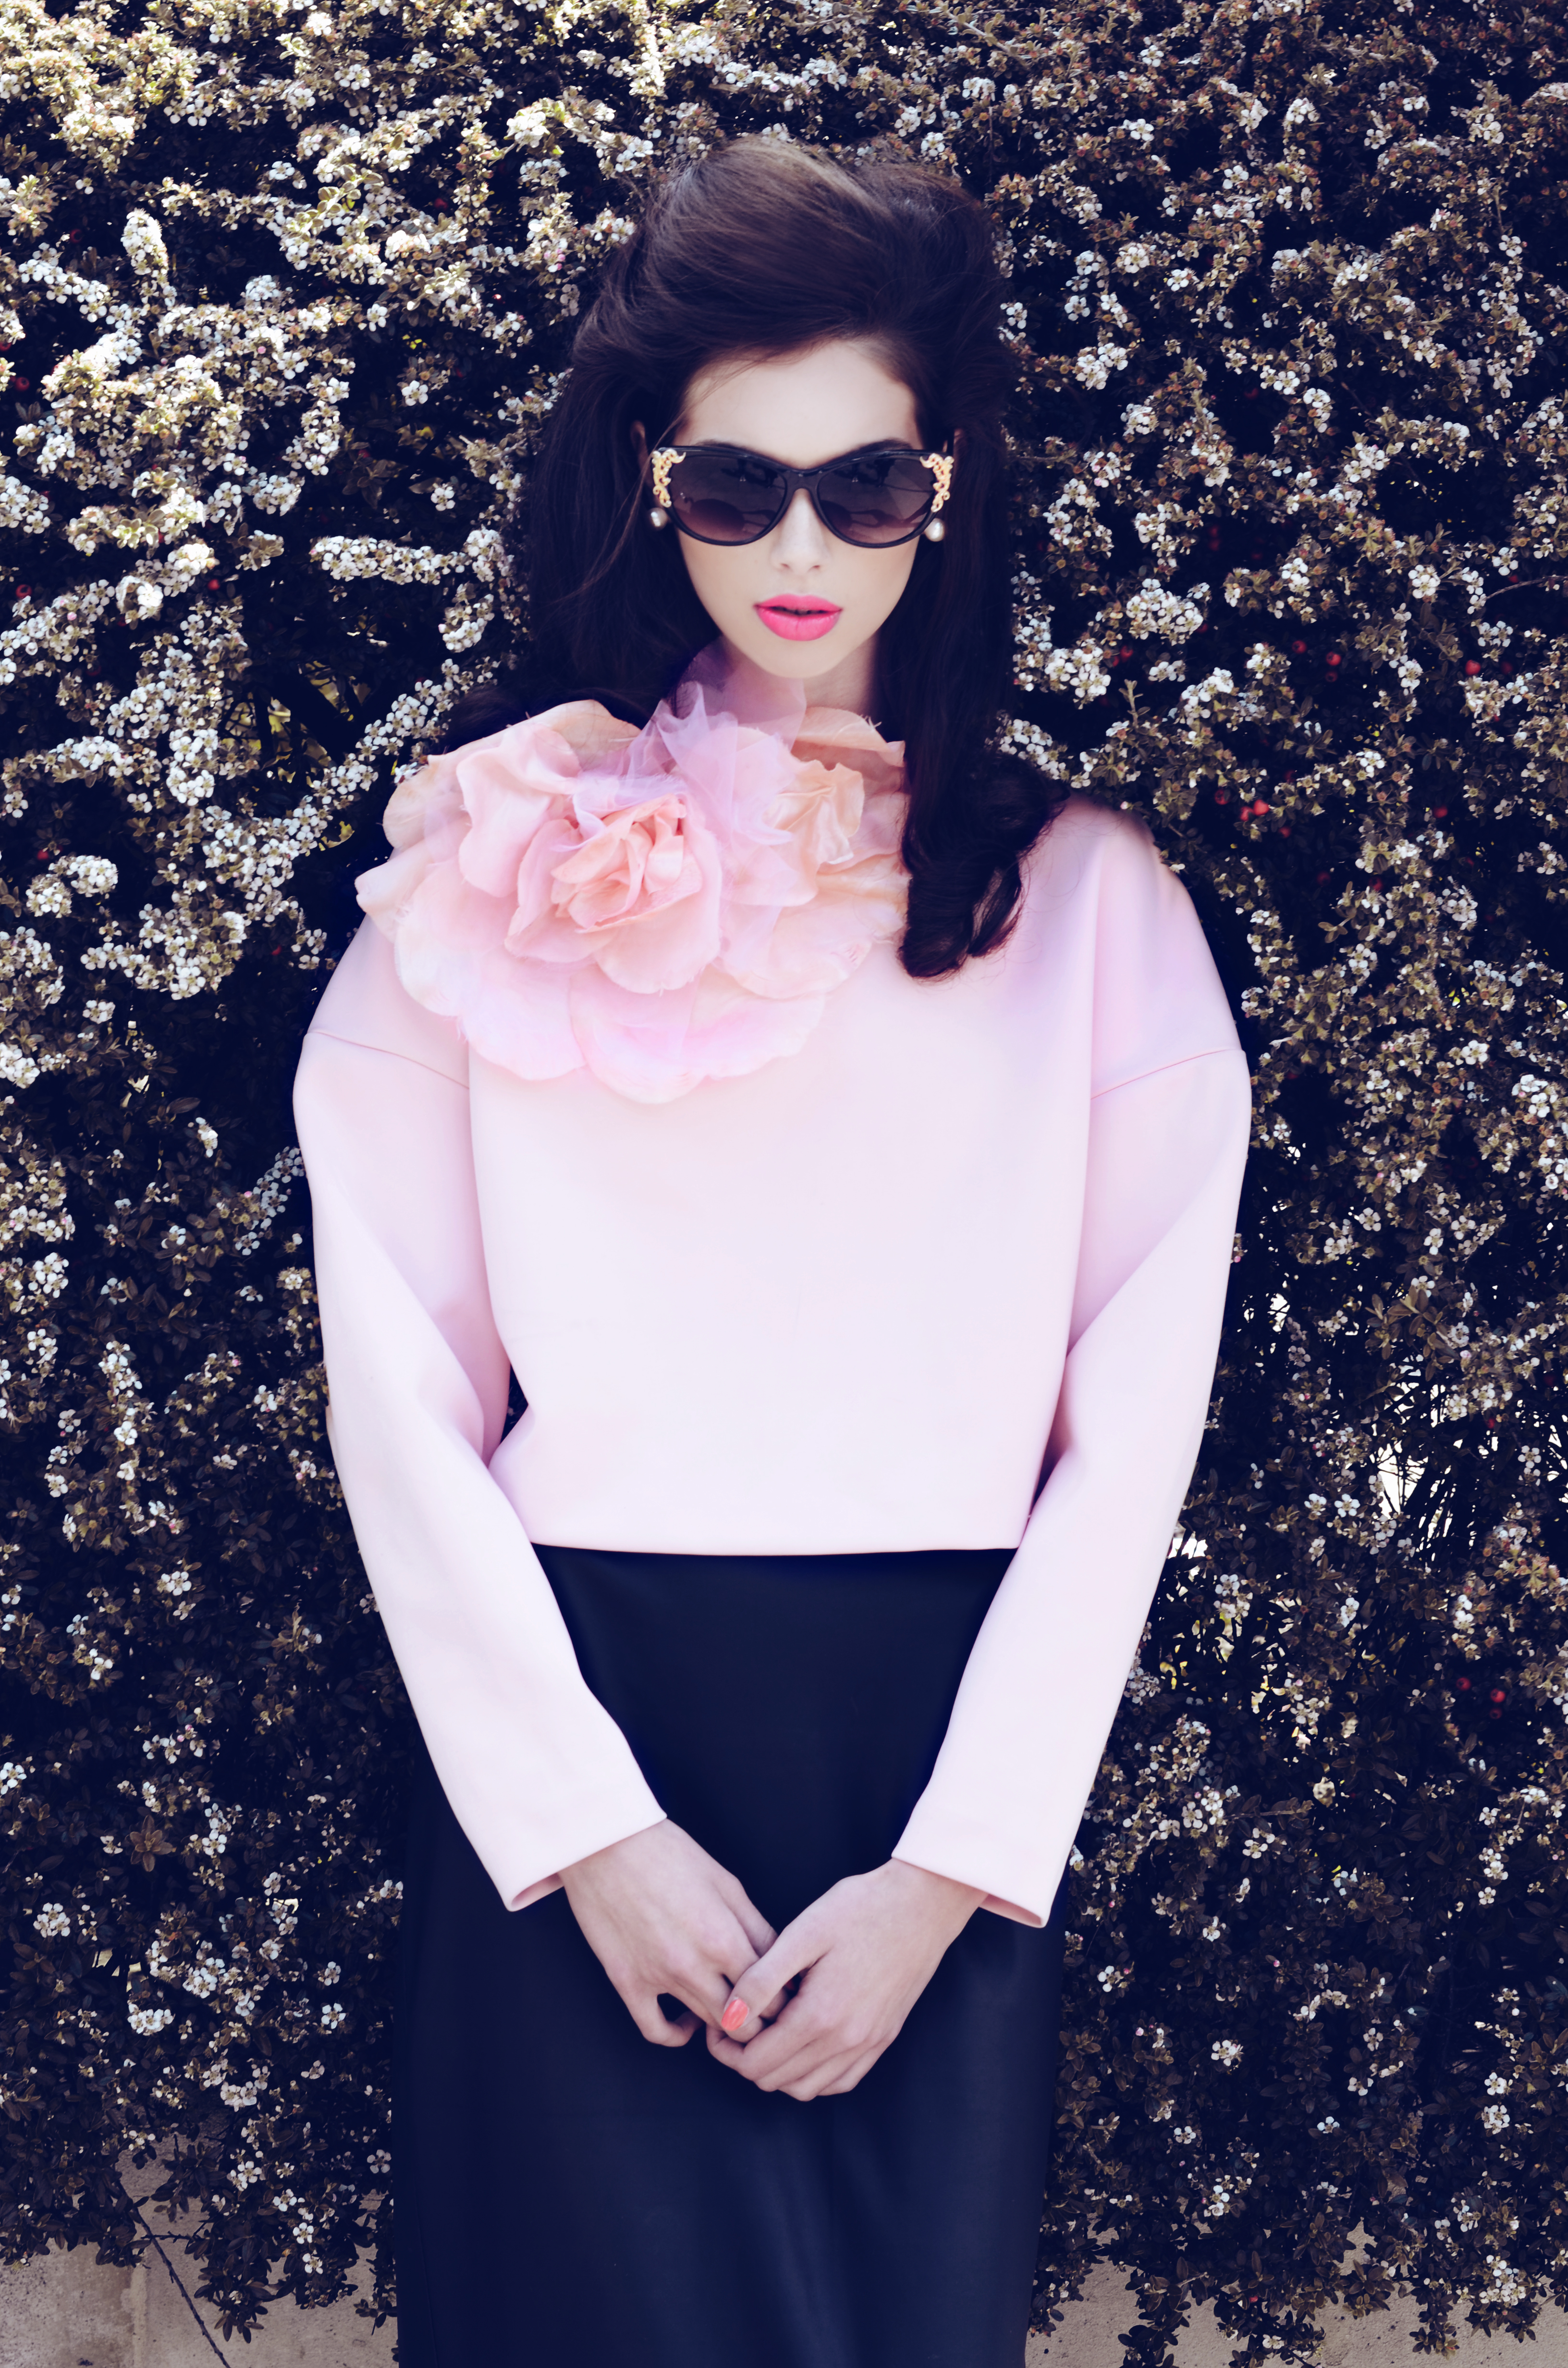 vintage retro fashion editorial lana del rey h&m AQ by AQ